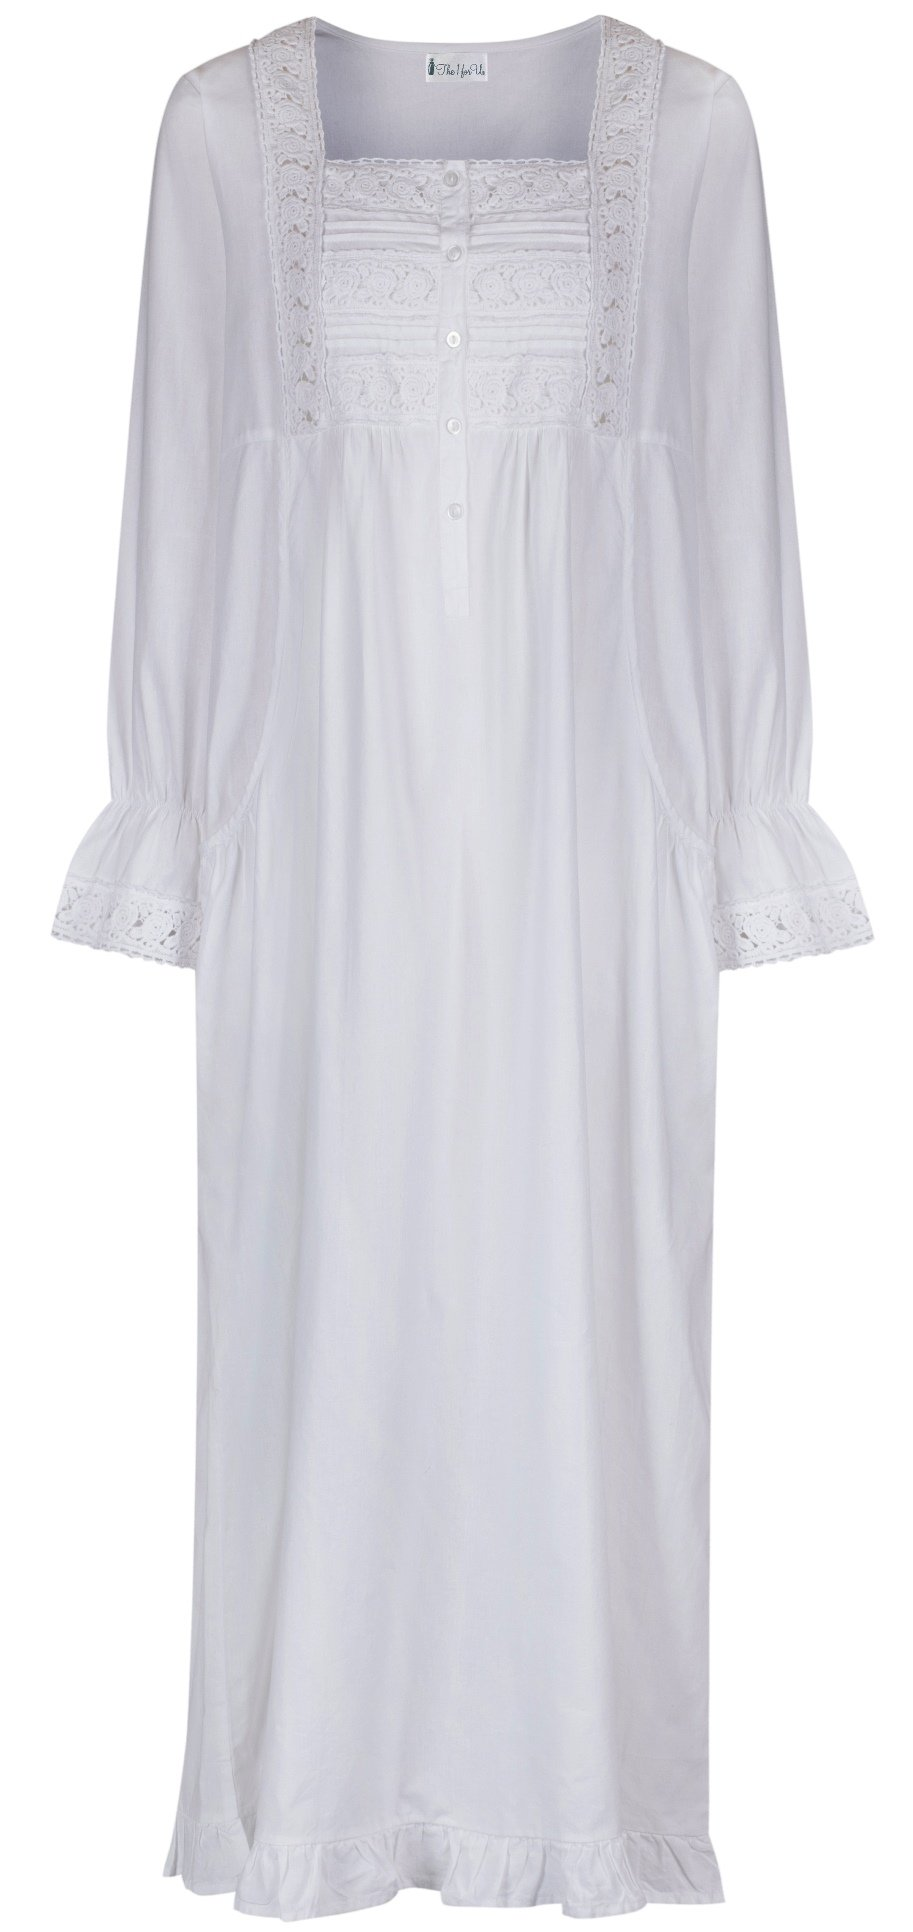 The 1 for U 100% Cotton Nightgown - Gown with Pockets - 7 Sizes - Isabella